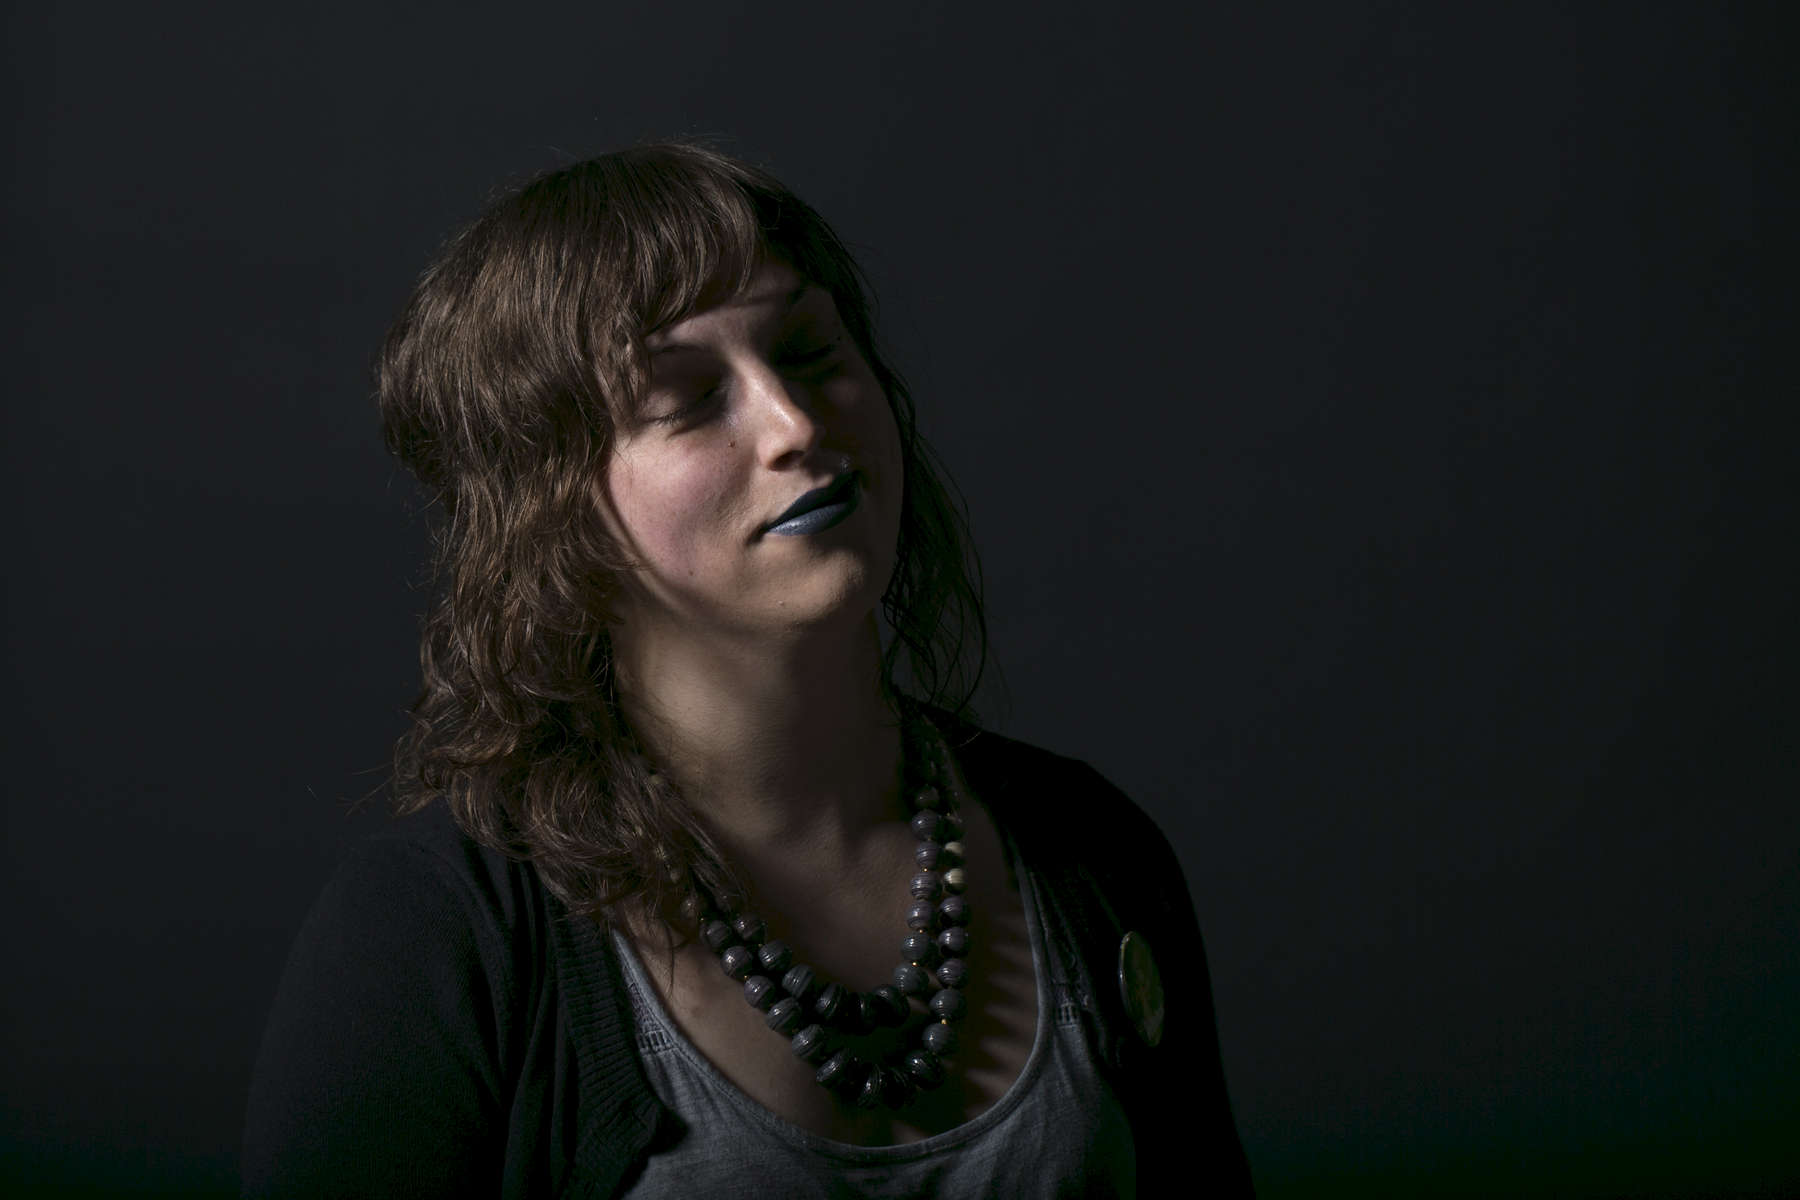 Madisyn Artemesia DelPorto, 28, of Portland, says she she presented as {quote}a super gender queer, nonbinary person for years.{quote} She then {quote}gradually wandered further and further into femininity and eventually started HRT [hormone replacement therapy] and found that the most comfortable place for me to live my life was as a woman.{quote}Kristyna Wentz-Graff/Staff